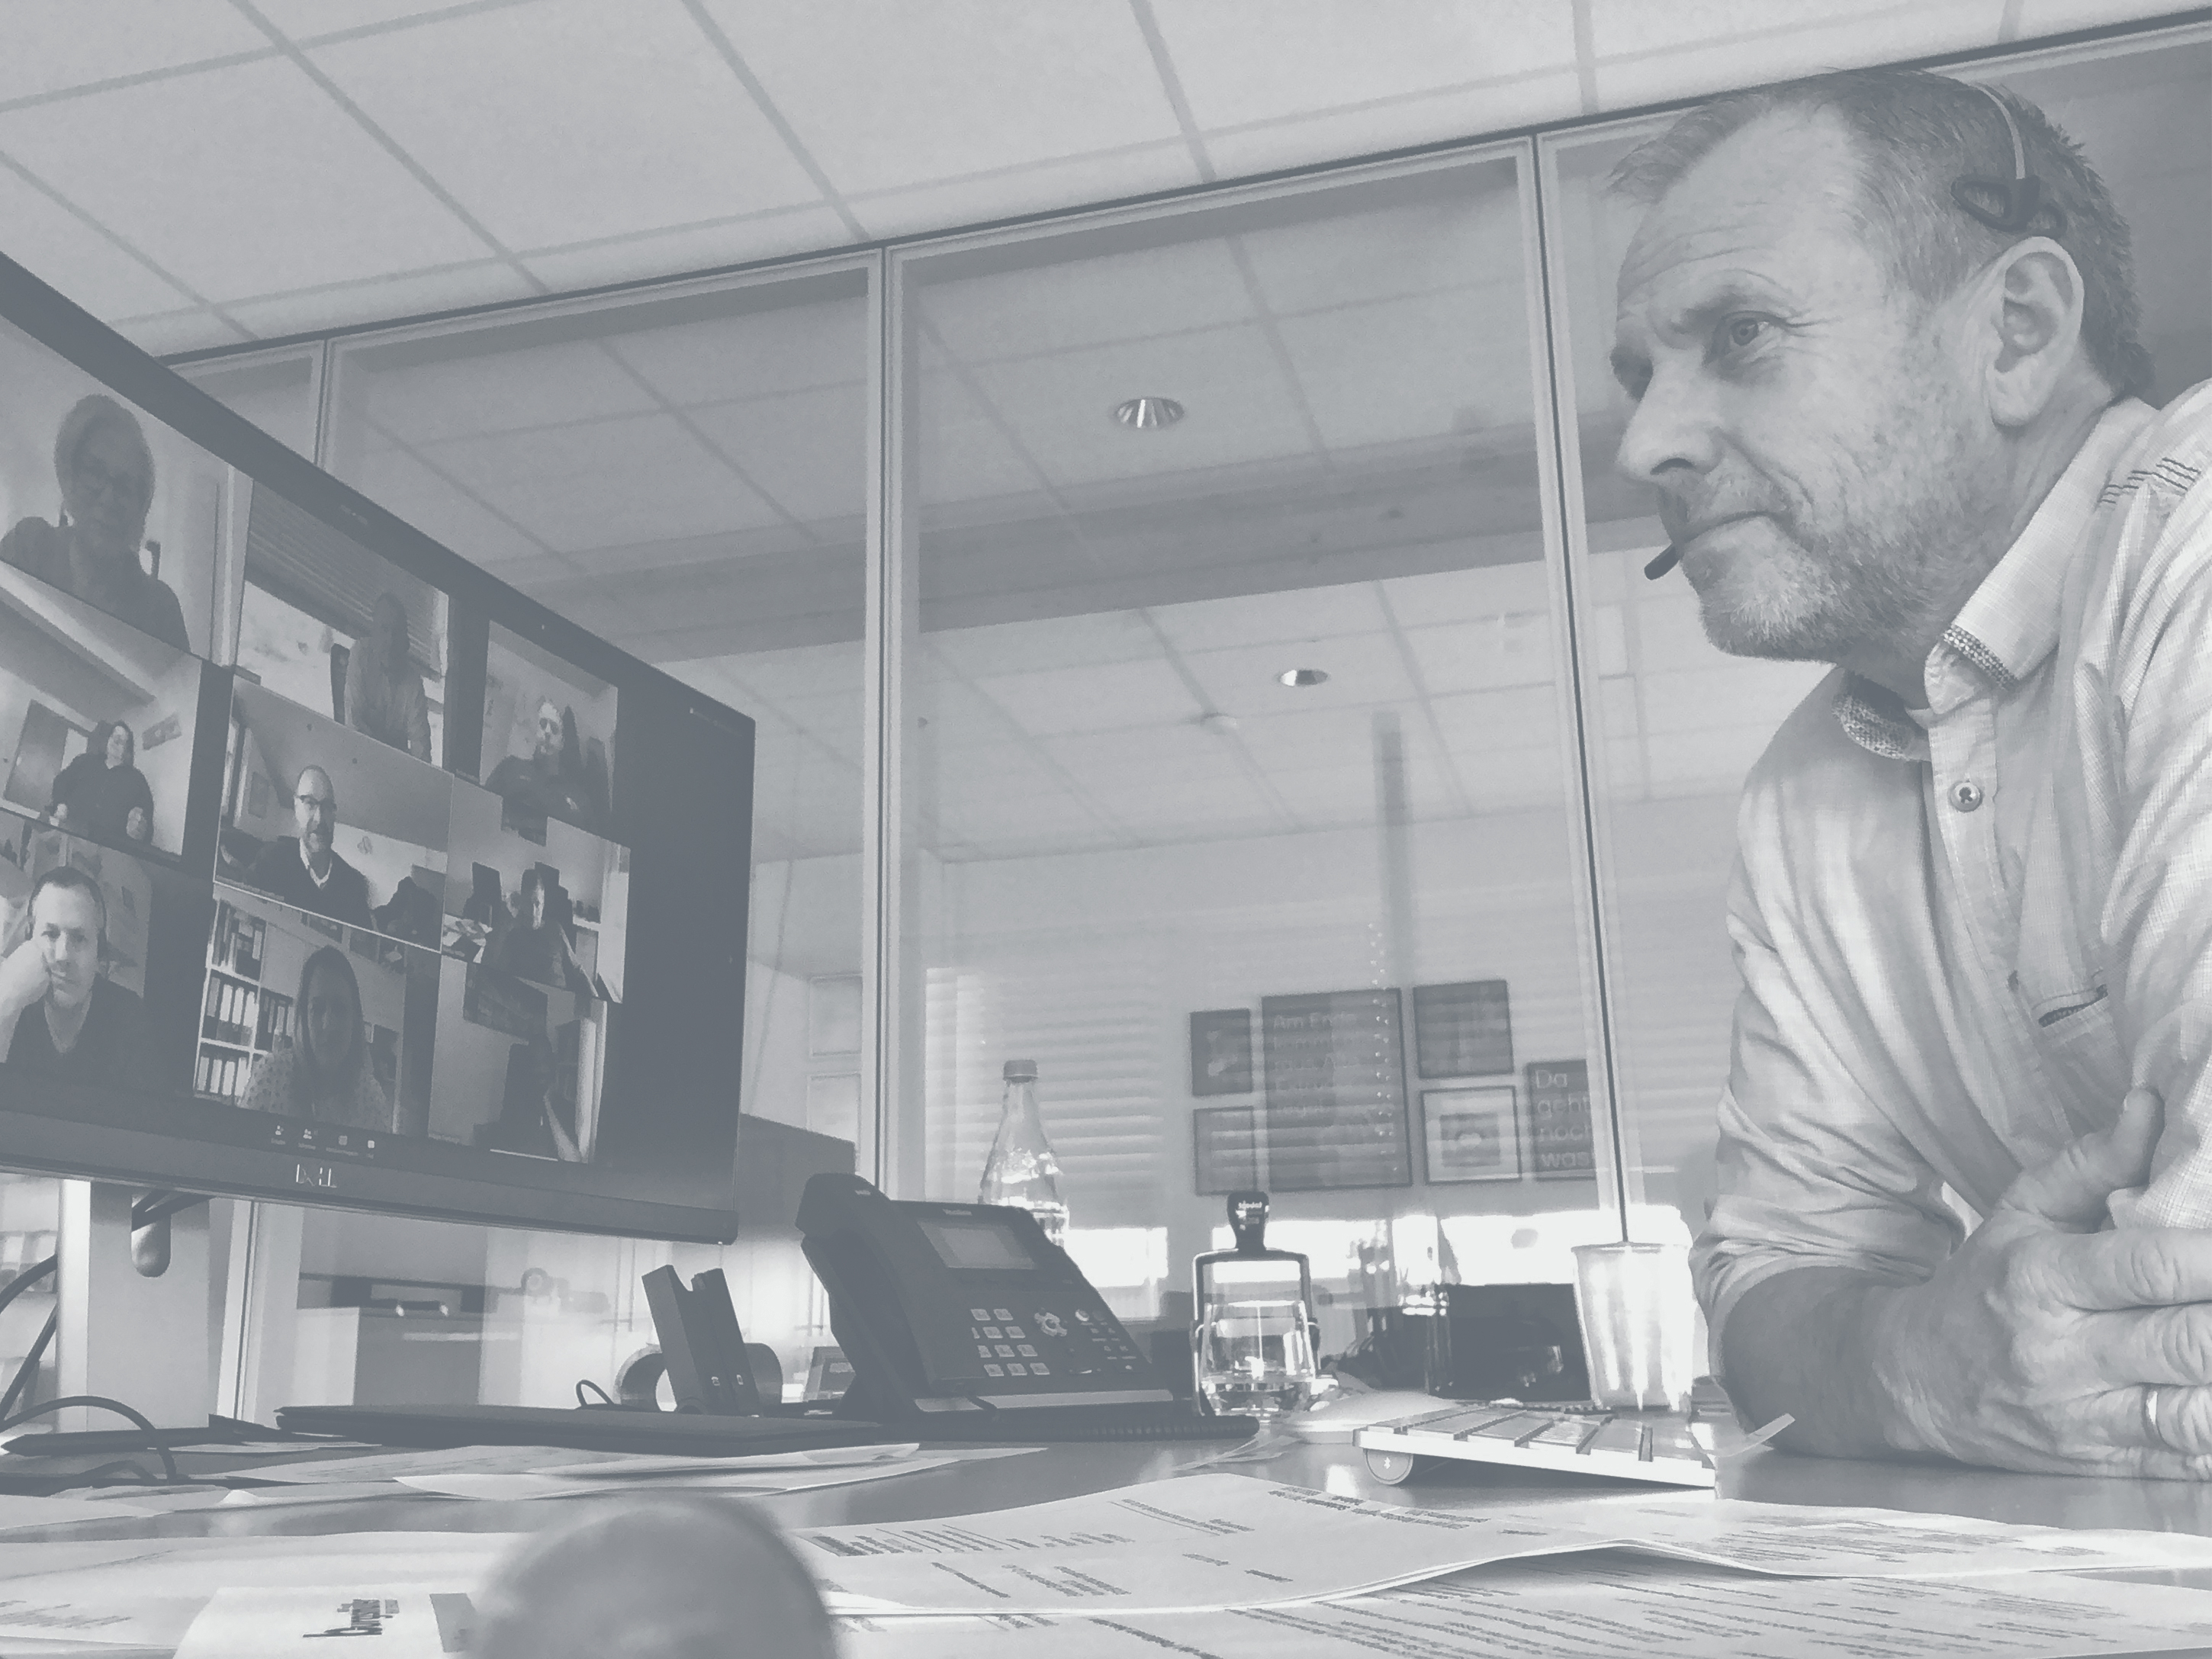 Managing director Georg Hahn in front of a monitor with a video conference